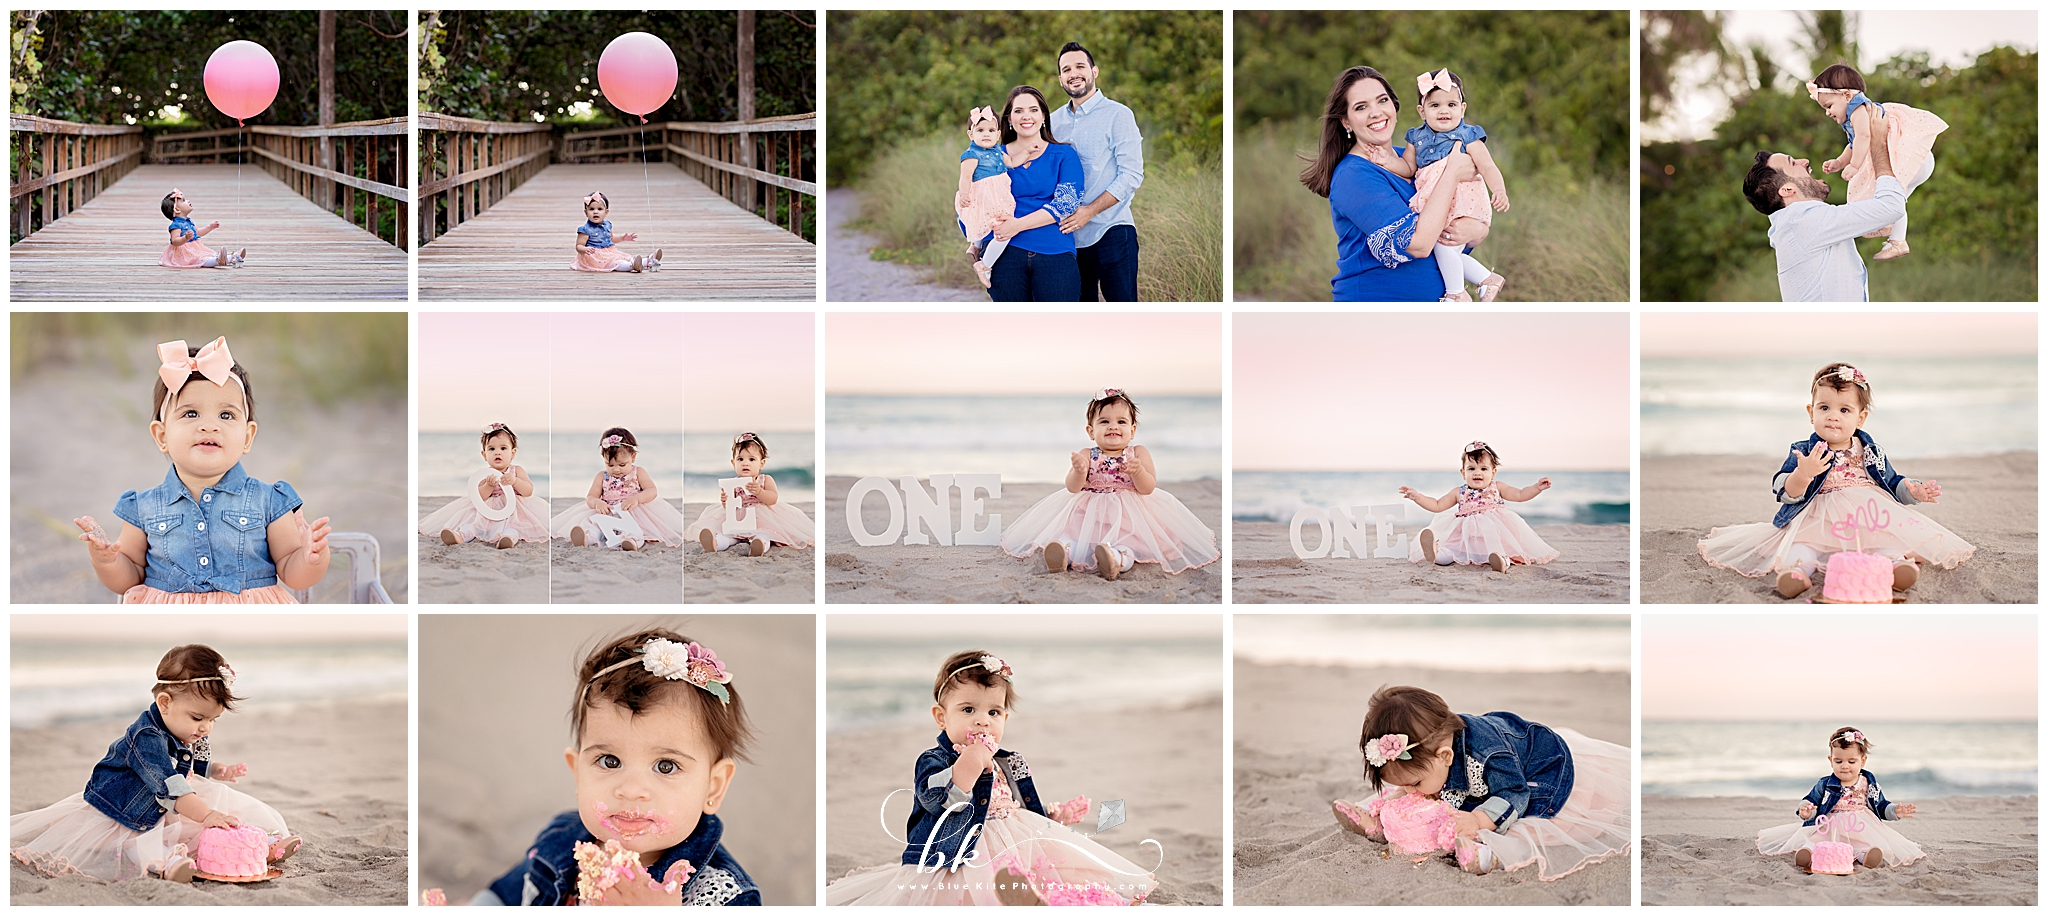 Baby photographer, Beach session in Coral Springs, FL